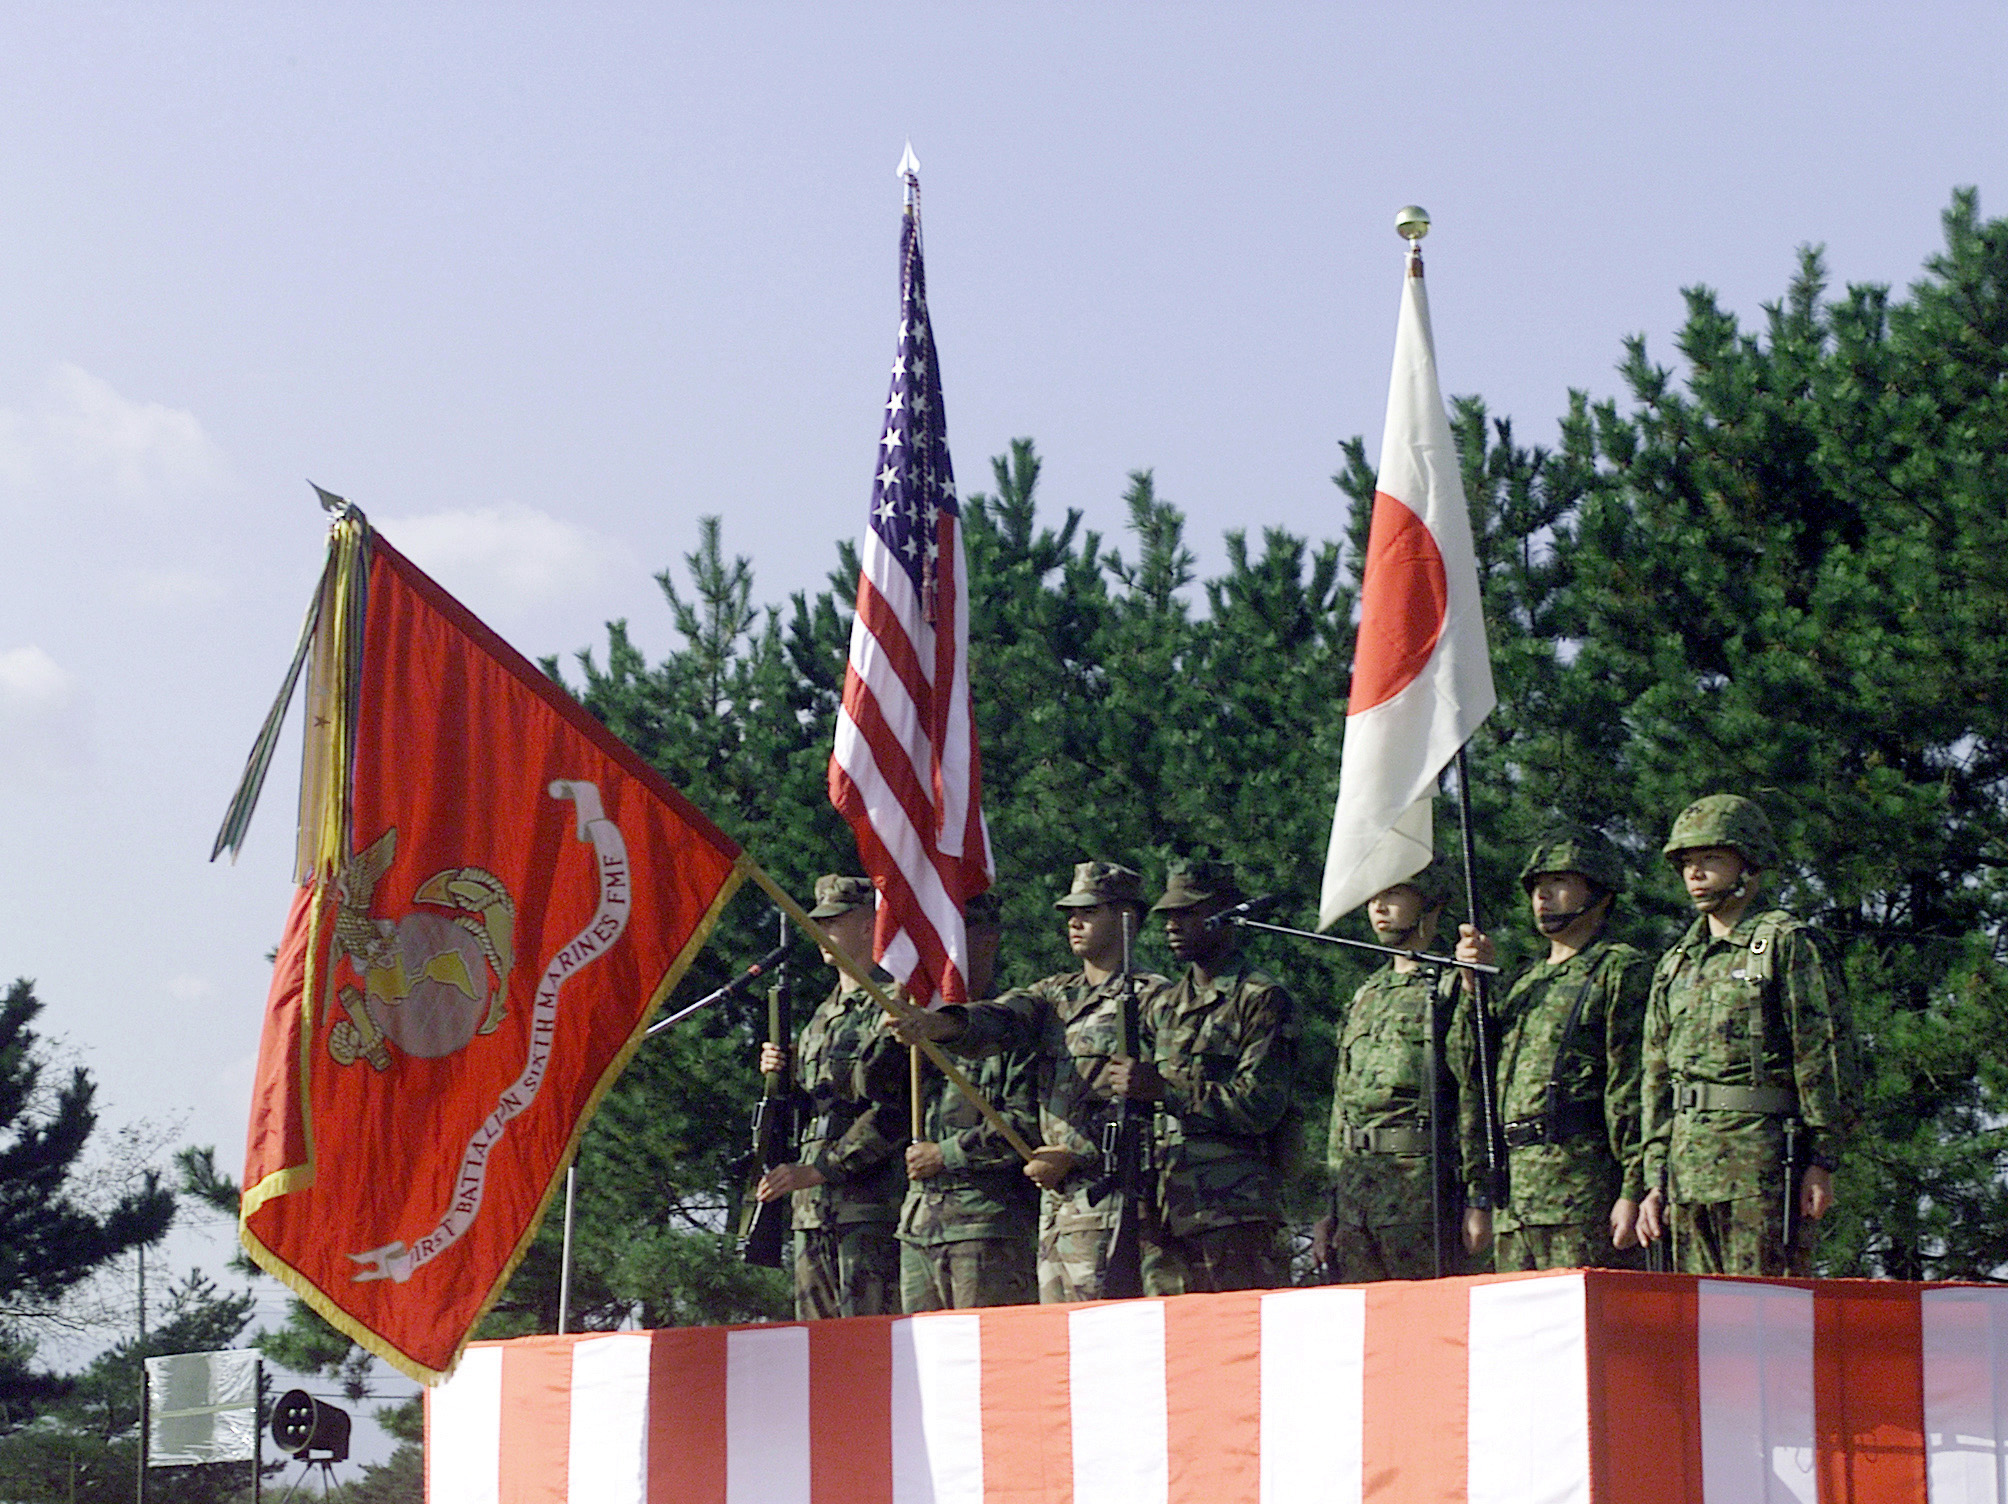 Both the Marine and Japanese Color Guard stand tall, rendering proper respect for both National Anthems at the Opening Ceremony during Forest Light 2000. Forest Light is a cultural enhancing, combined arms exercise in which Marines from 1ST Battalion, 6th Marine Regiment train with soldiers from the 44th Infantry Regiment, Japanese Ground Self Defense Force (JGSDF). The units train side by side teaching each other various weapons systems, different tactical offenses and defenses, as well as close combat skills